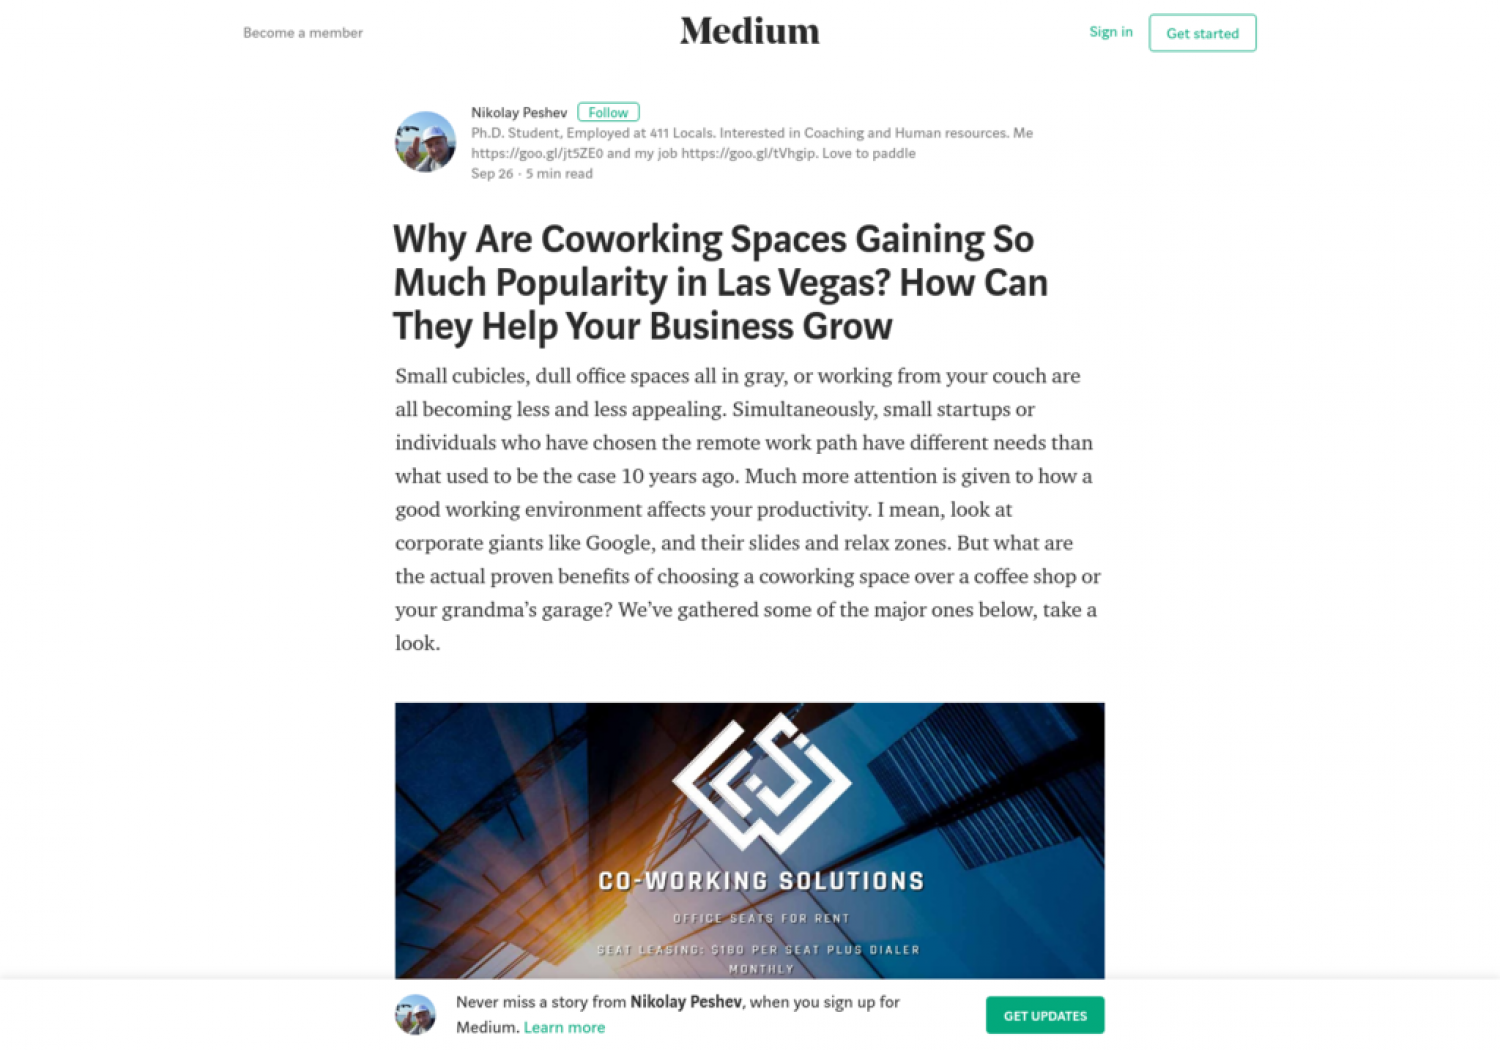 Why Are Coworking Spaces Gaining So Much Popularity in Las Vegas? How Can They Help Your Business Grow Infographic